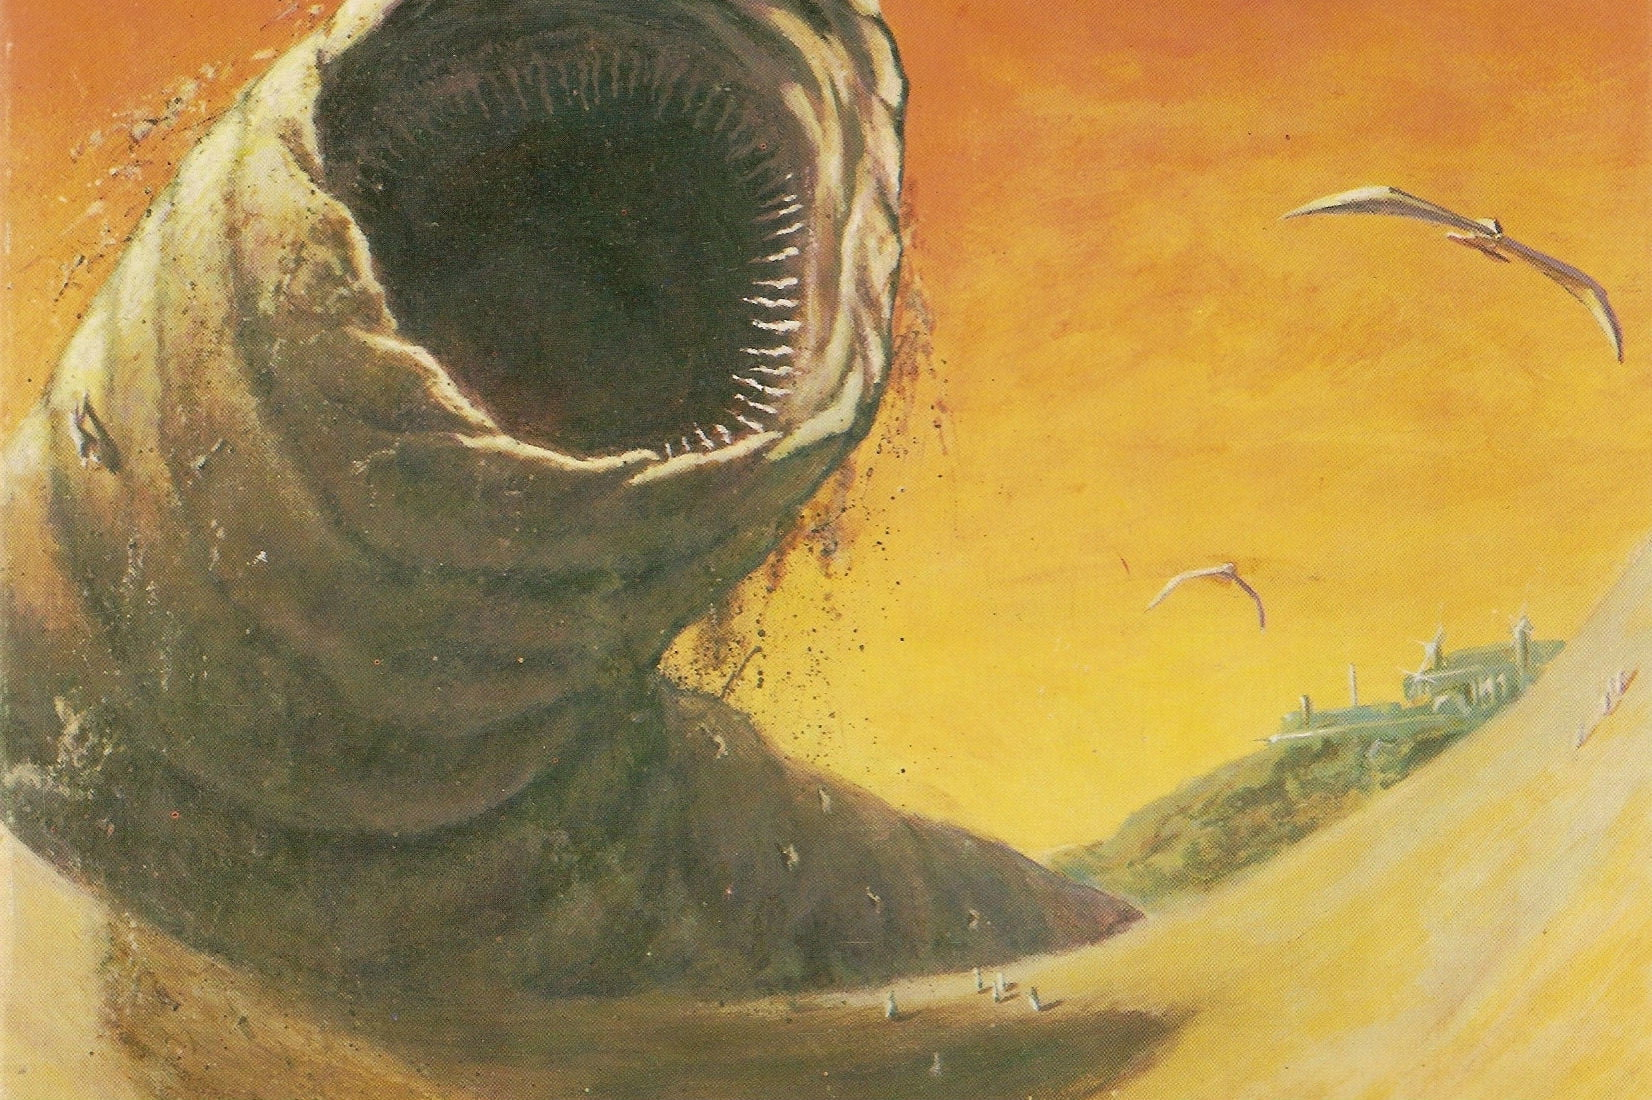 18 Epic Science Fiction Books Being Made Into Movies